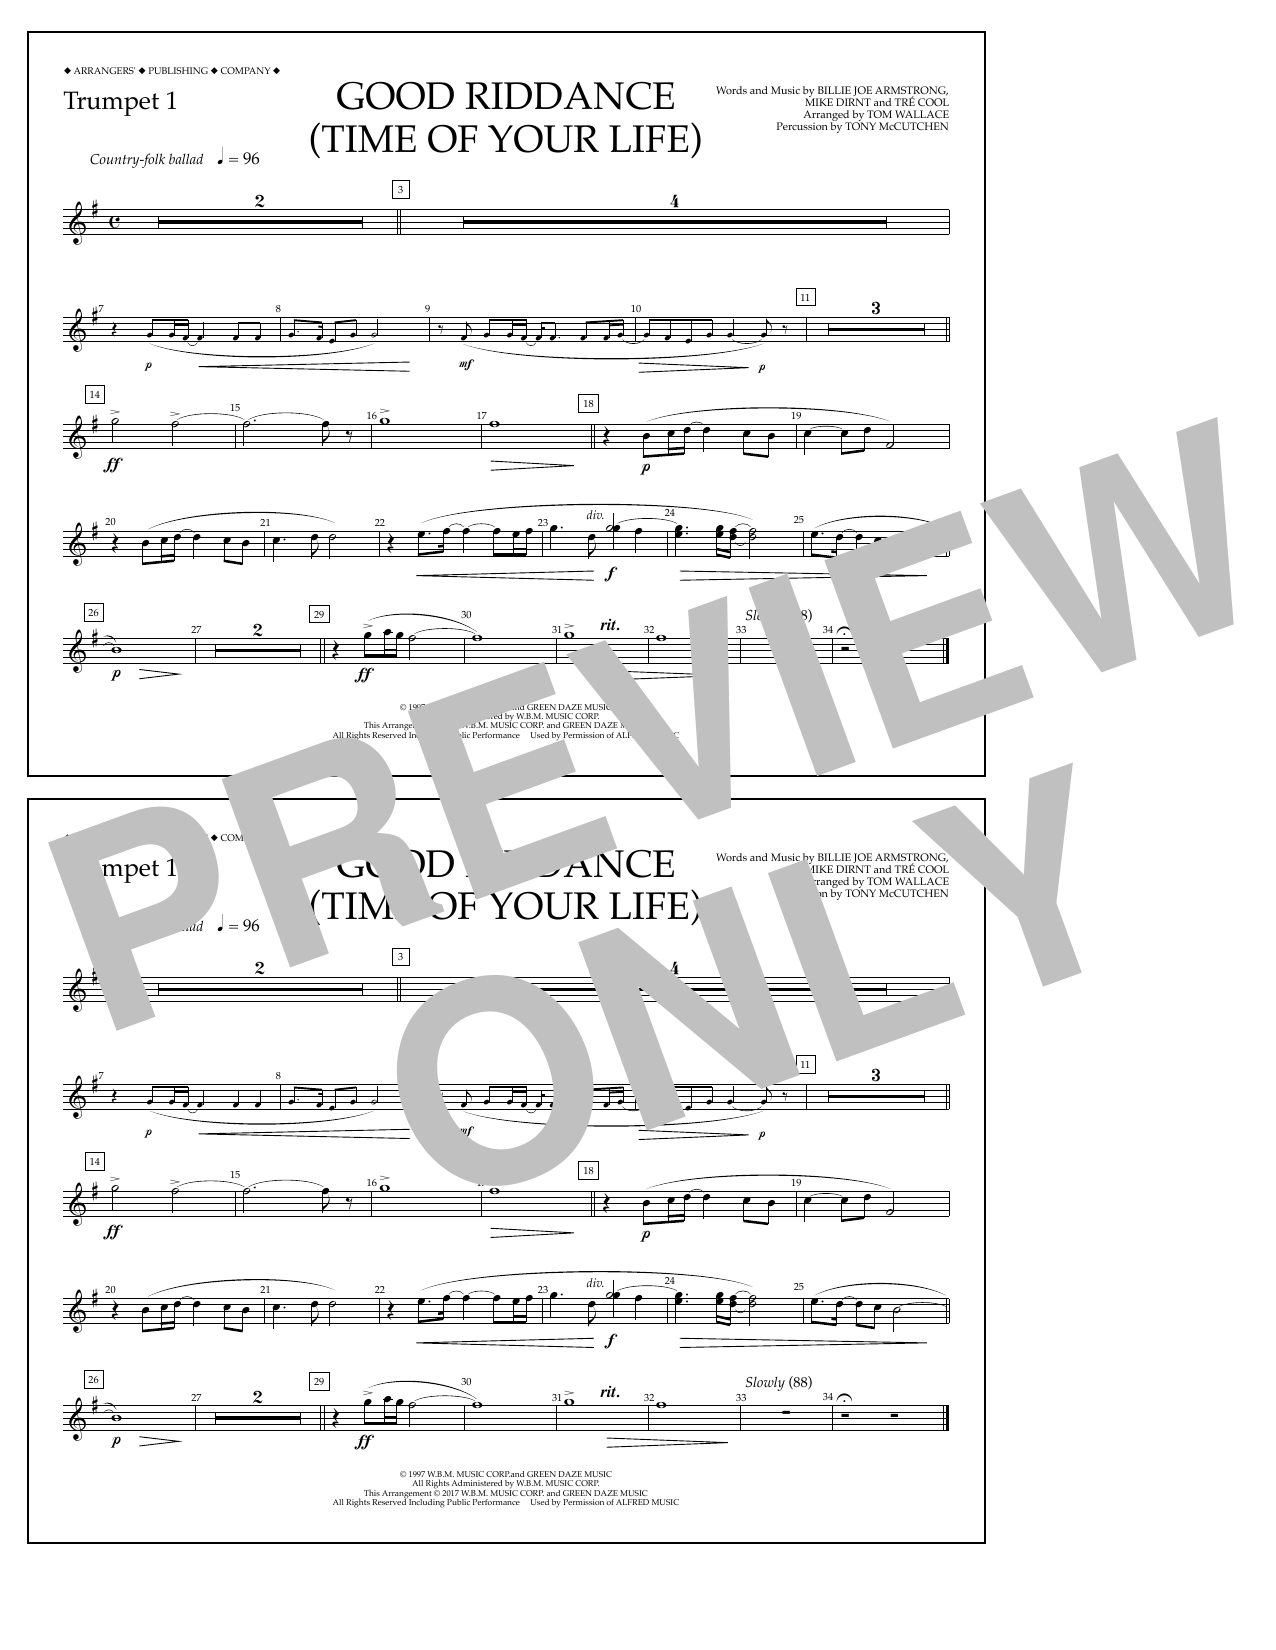 Good Riddance (Time of Your Life) - Trumpet 1 Sheet Music